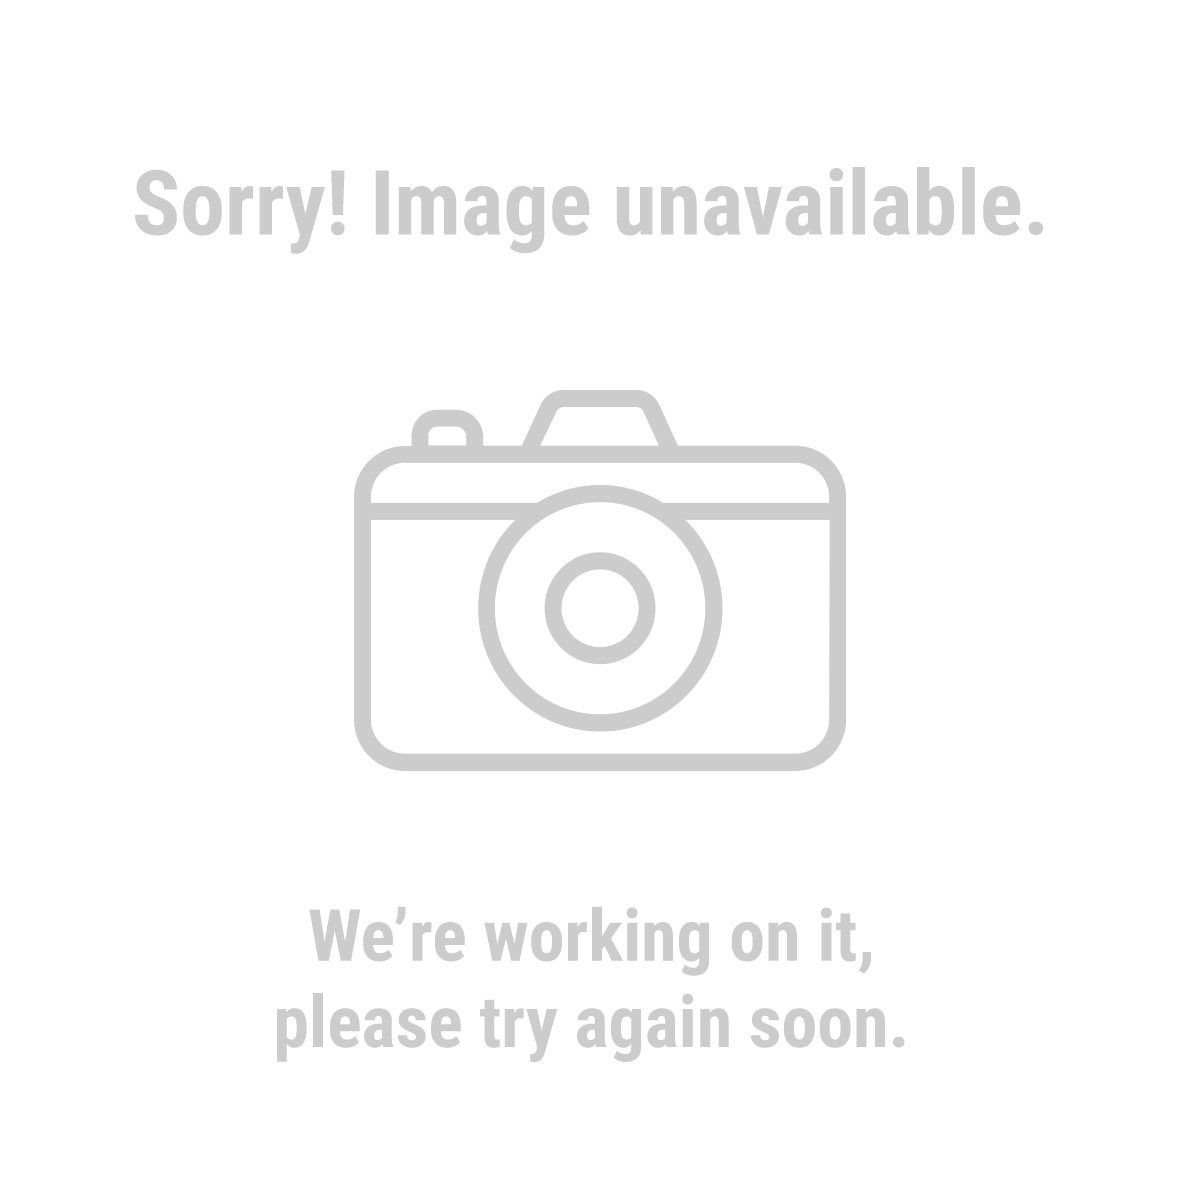 Warrior 61195 4-1/2 in. 40 Grit Metal Cut-off Wheel 10 Pc